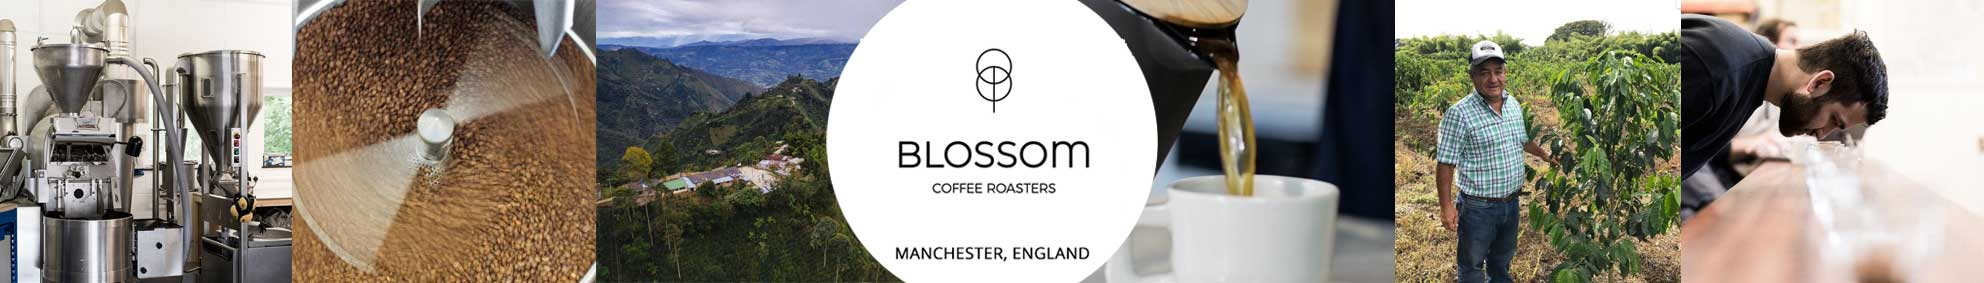 Blossom Roasters Manchester UK Coffee Subscription